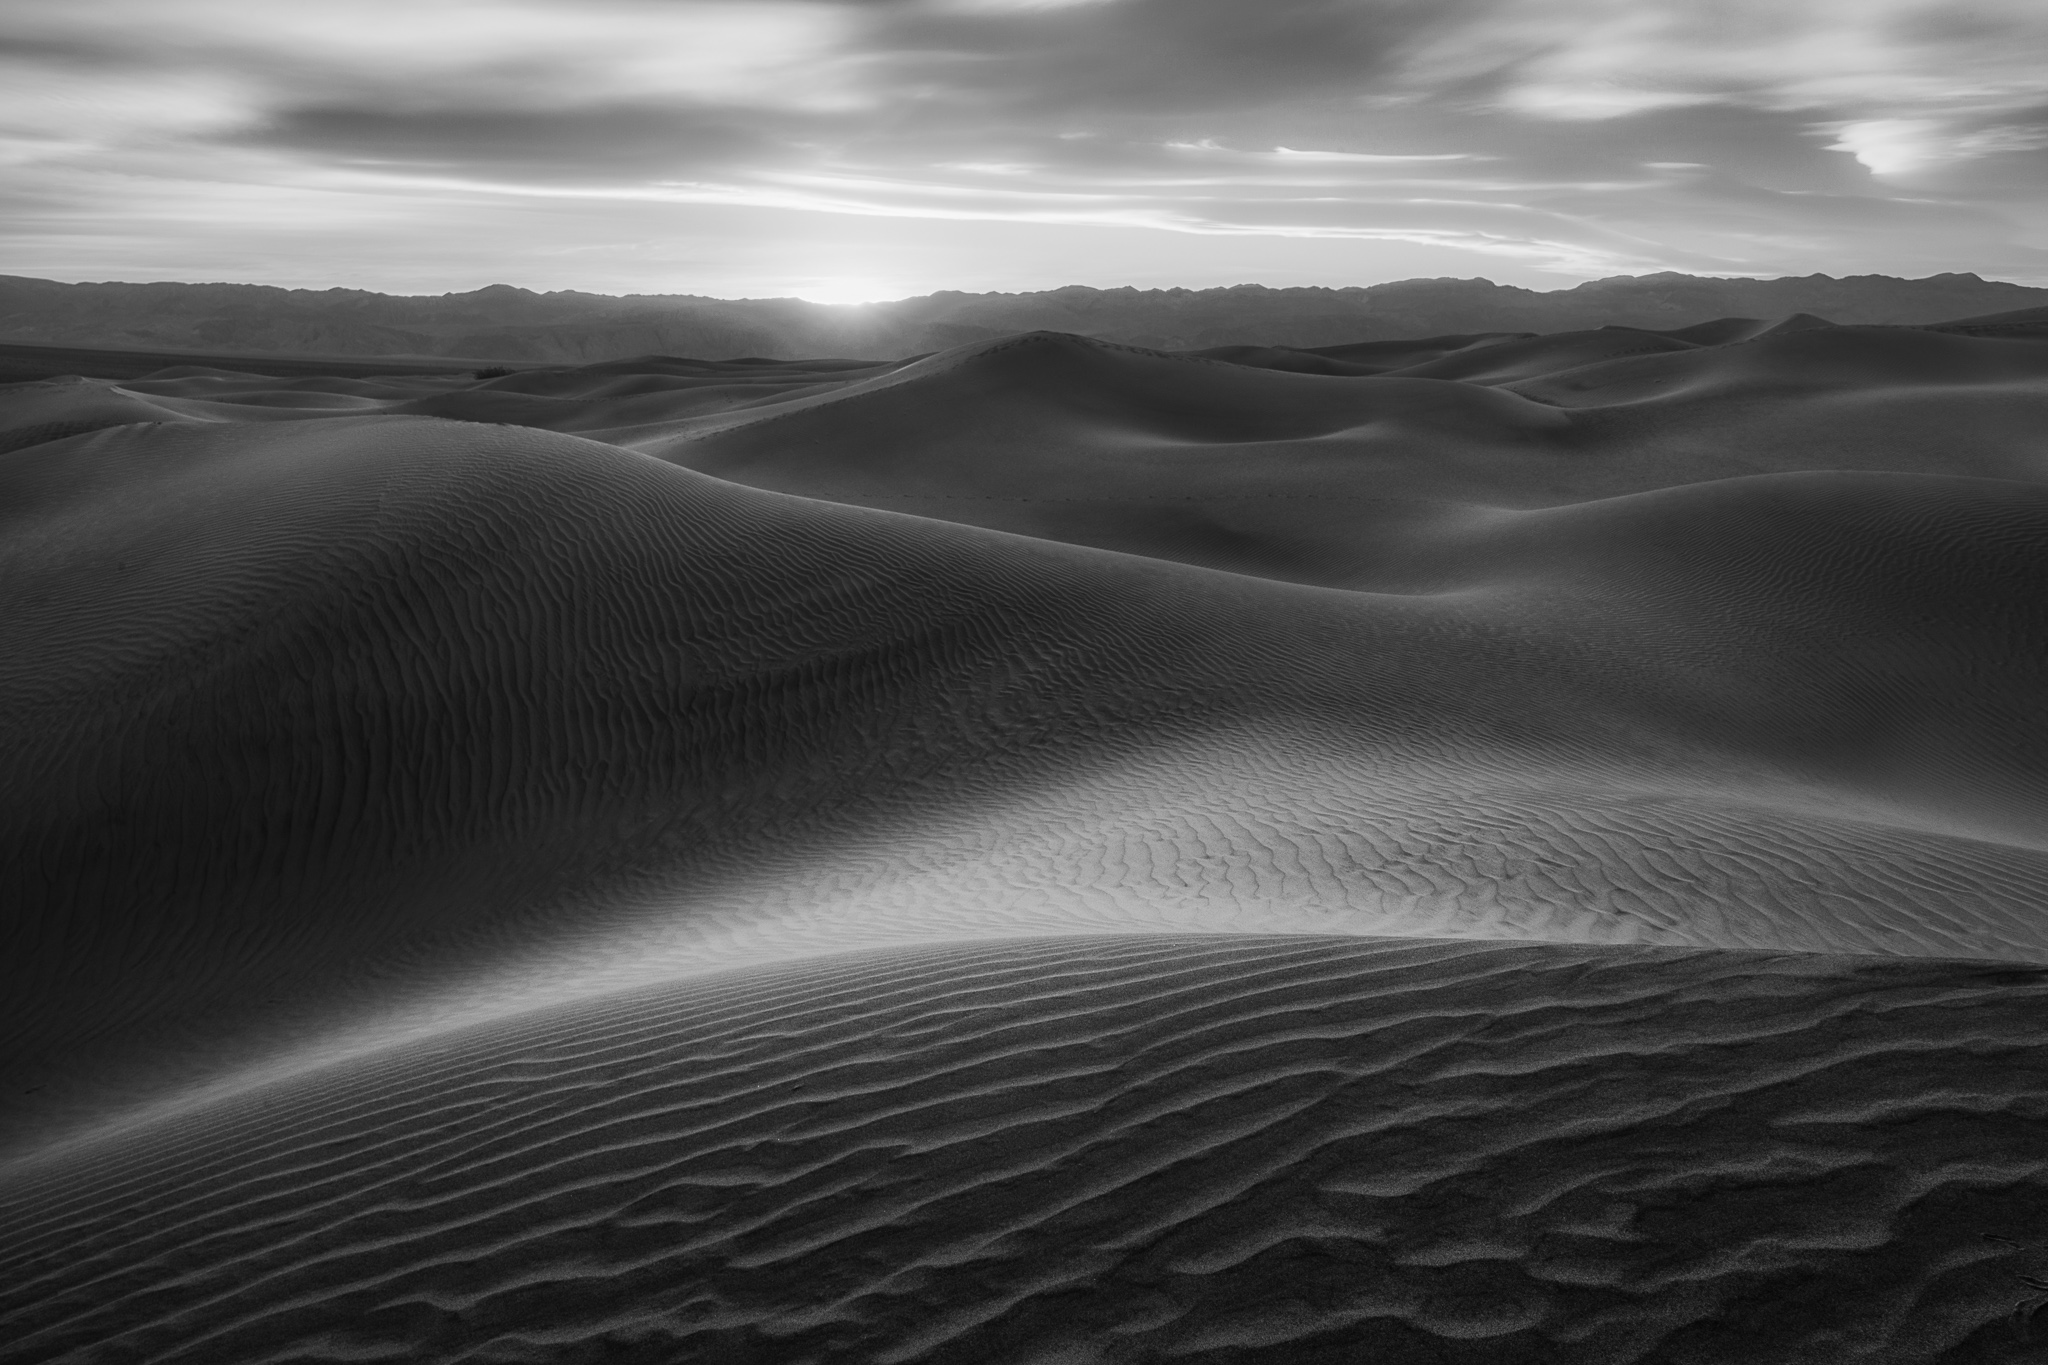 How to Take Better Black and White Landscape Photos